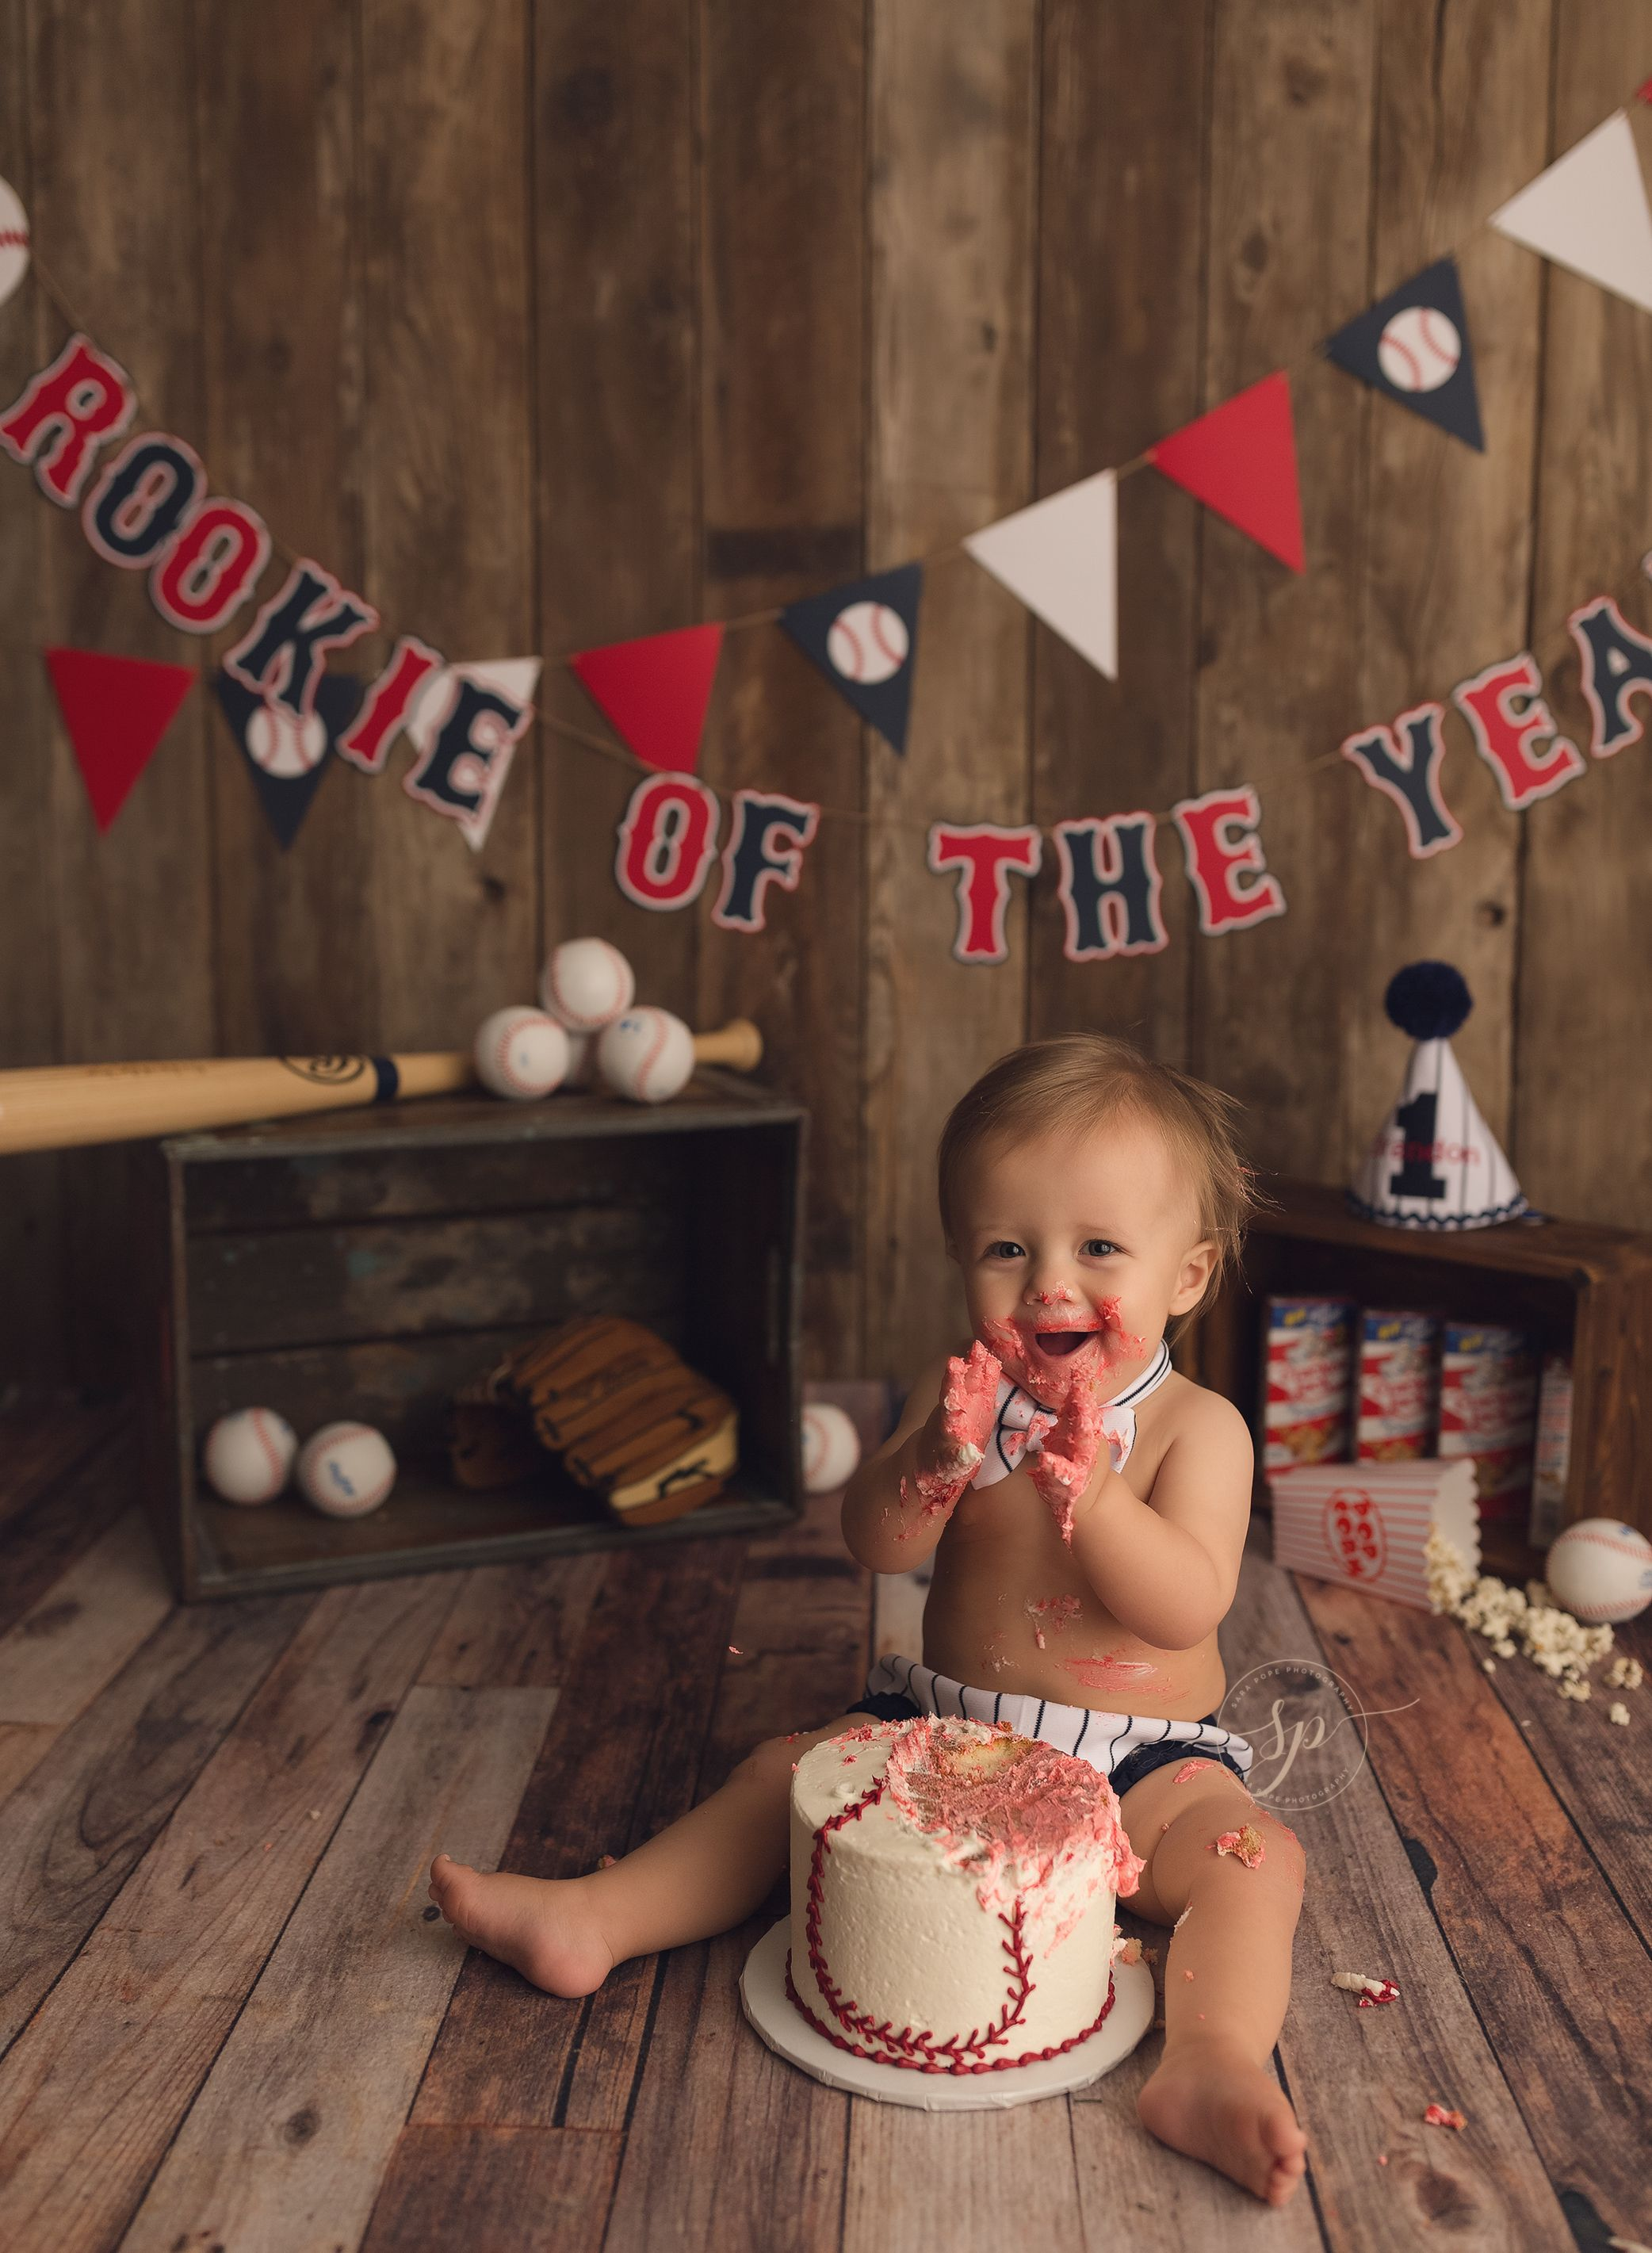 Baseball Themed Cake Smash Rookie Of The Year One Milestone Session Sara Pope Photography Brentwood CA Serving East Bay Area